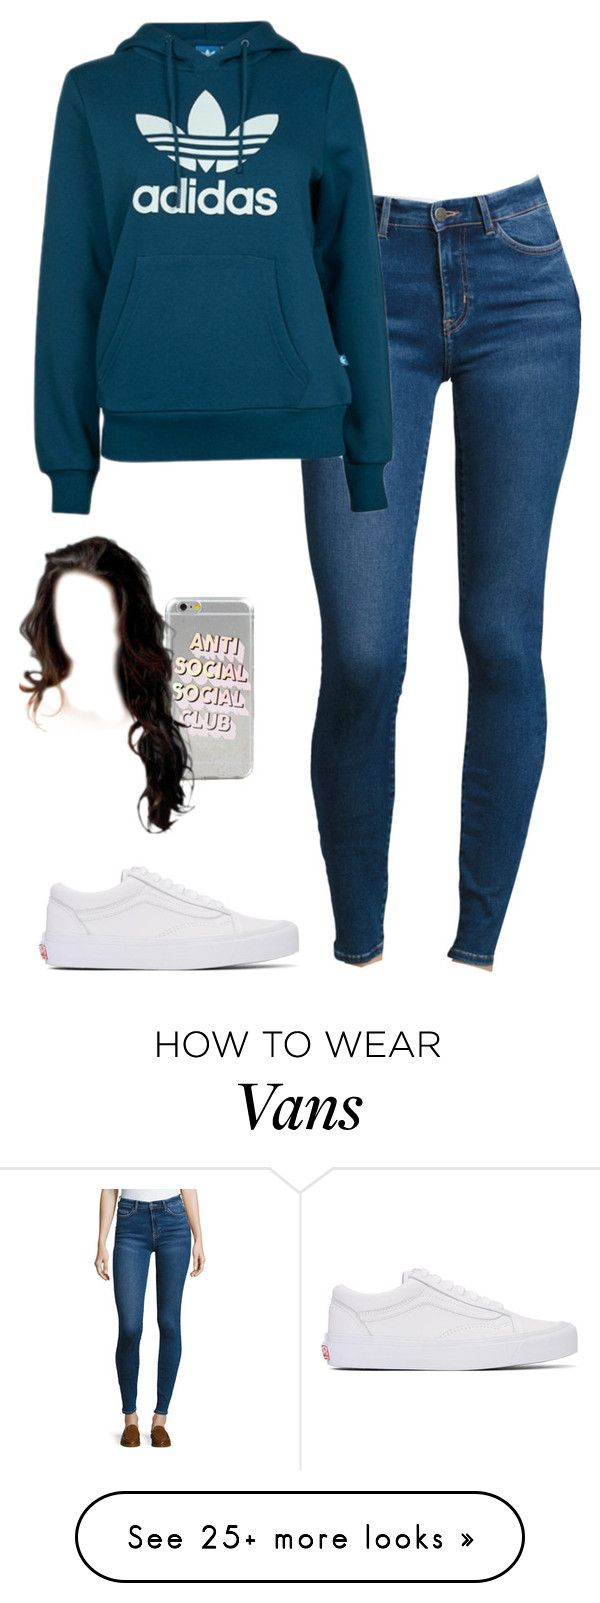 """""""13/3/17"""" by demibp on Polyvore featuring M.i.h Jeans, adidas and Vans"""